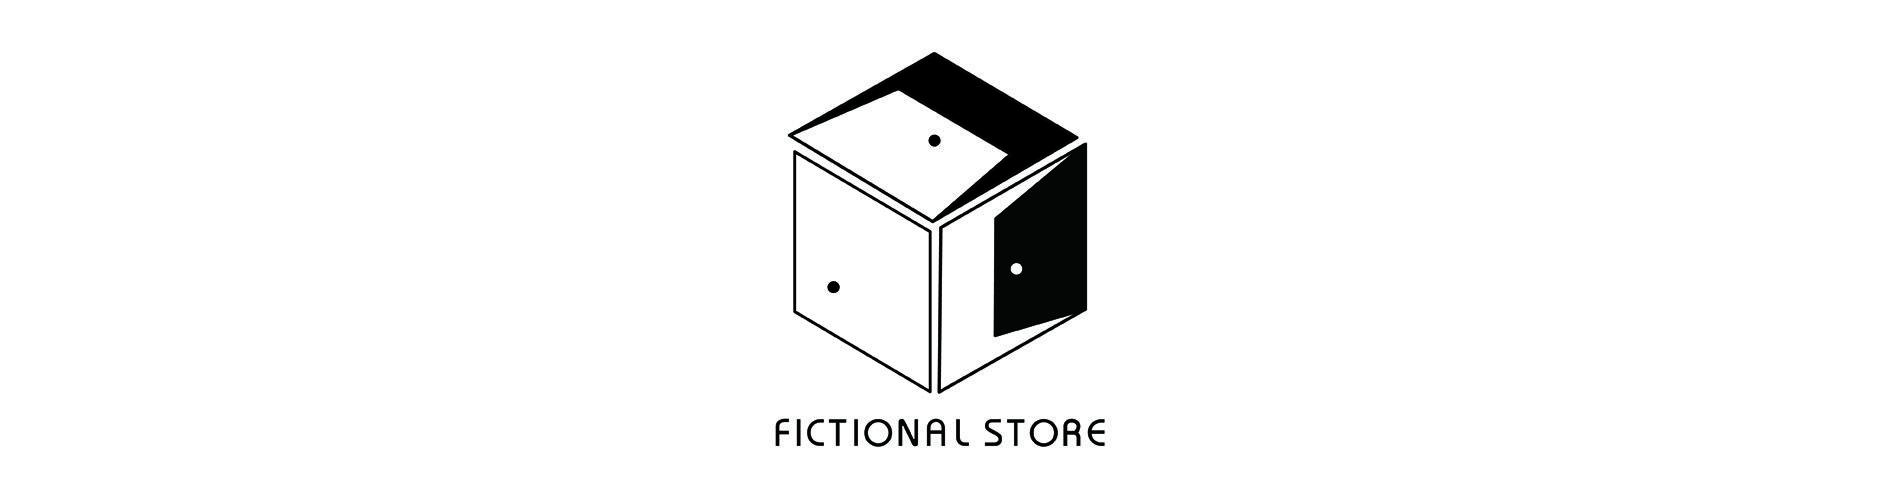 FICTIONAL STORE